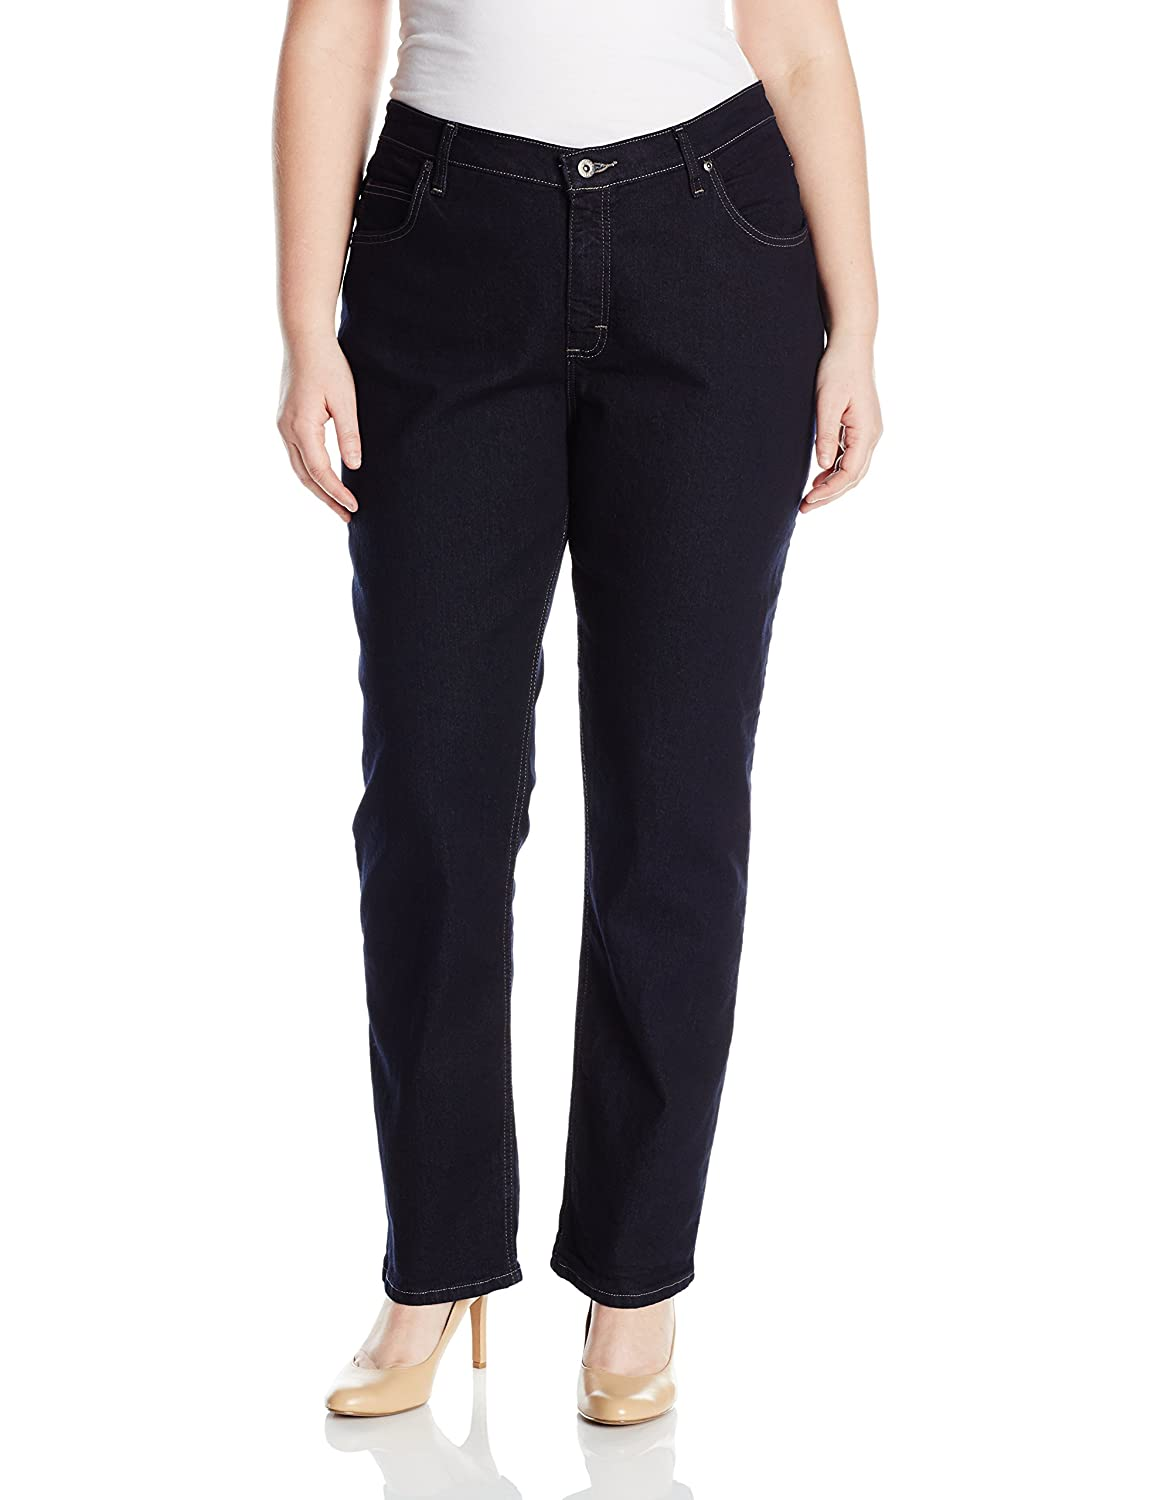 bfb7a648 Riders by Lee Indigo Women's Plus Size Joanna Classic 5 Pocket Jean at  Amazon Women's Clothing store: